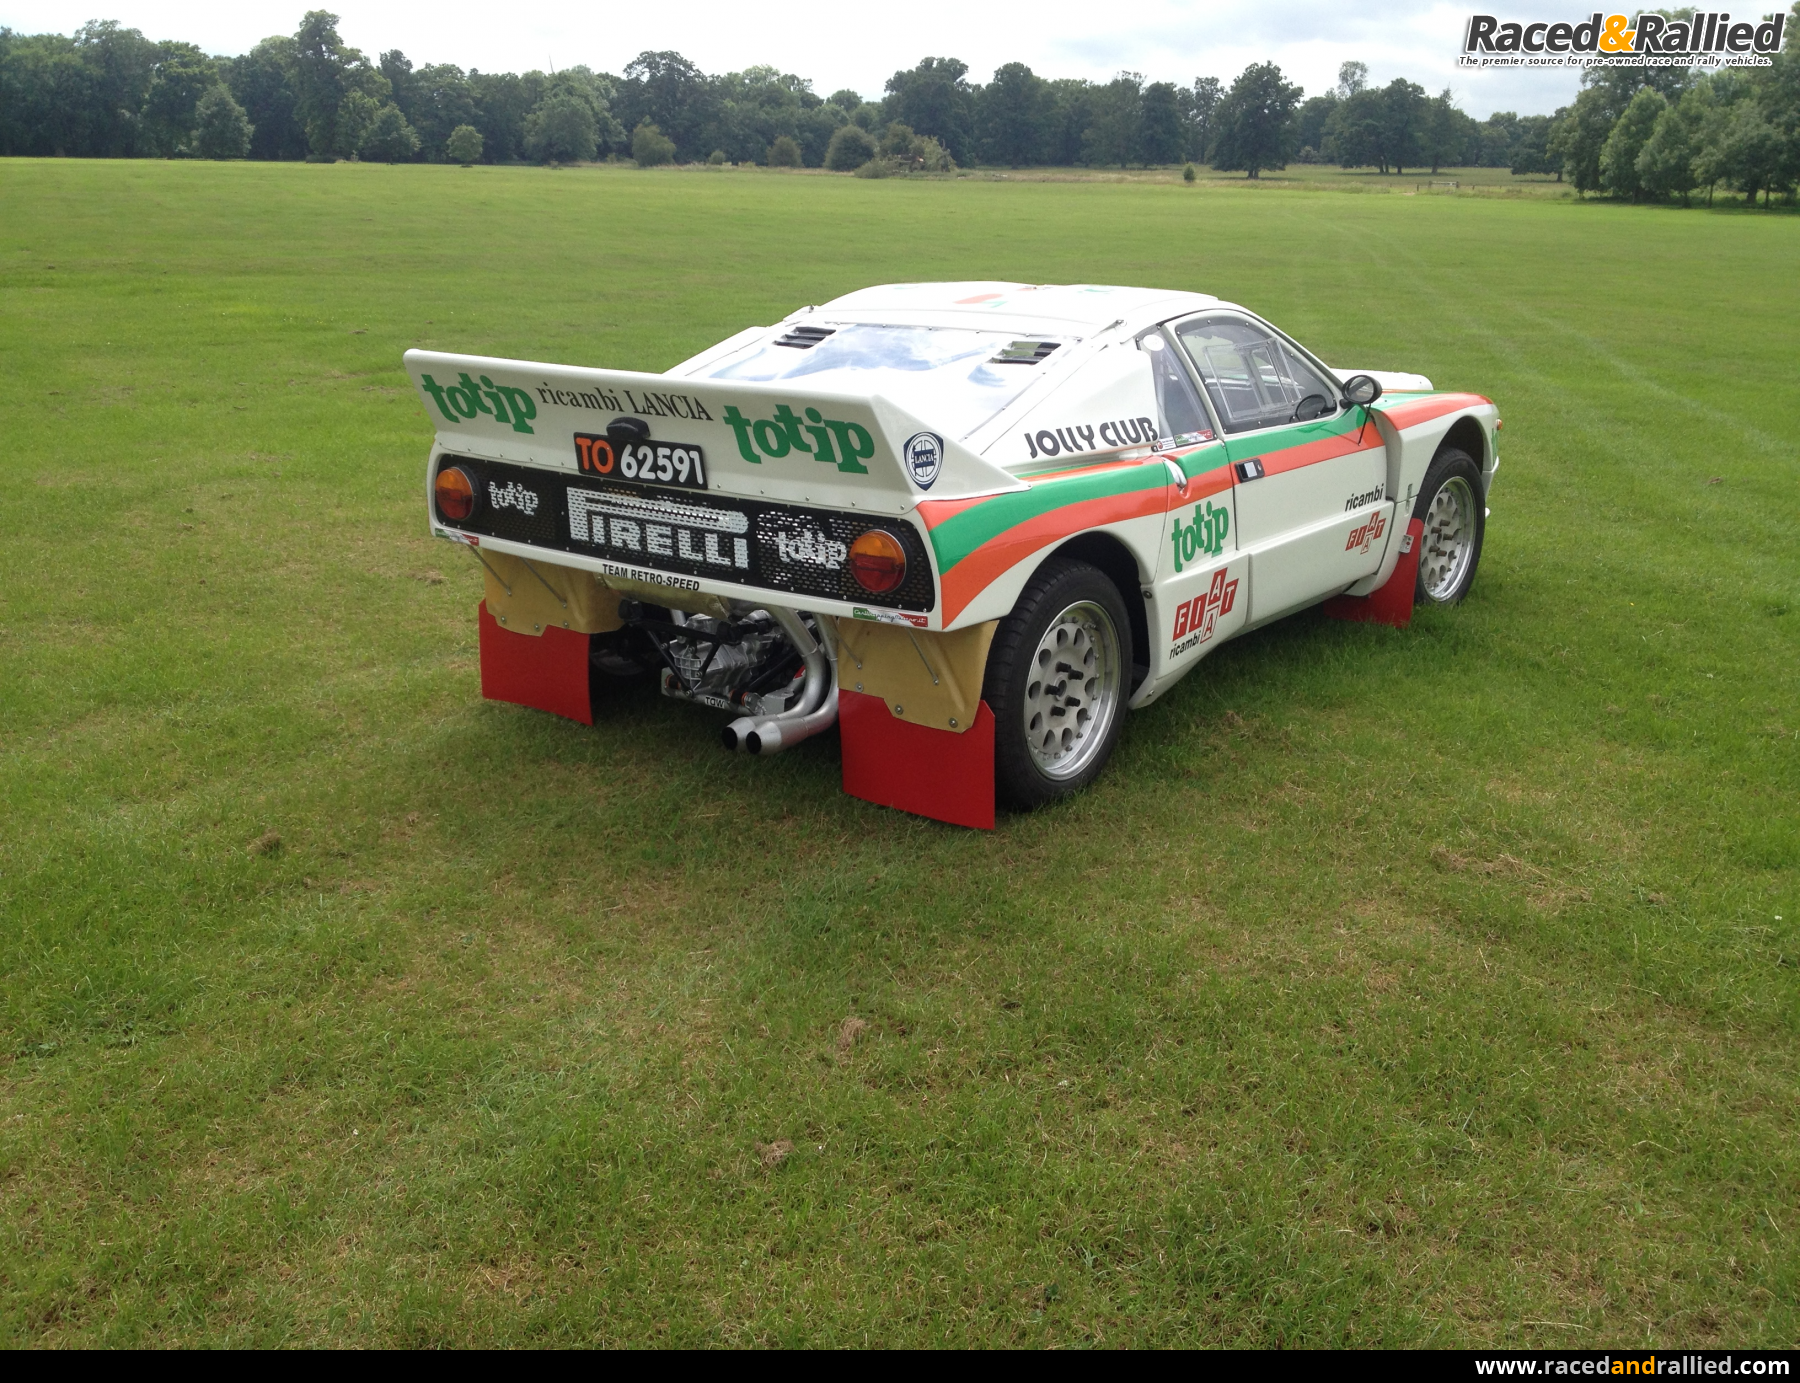 lancia 037 recreation | Rally Cars for sale at Raced & Rallied | rally cars for sale, race cars